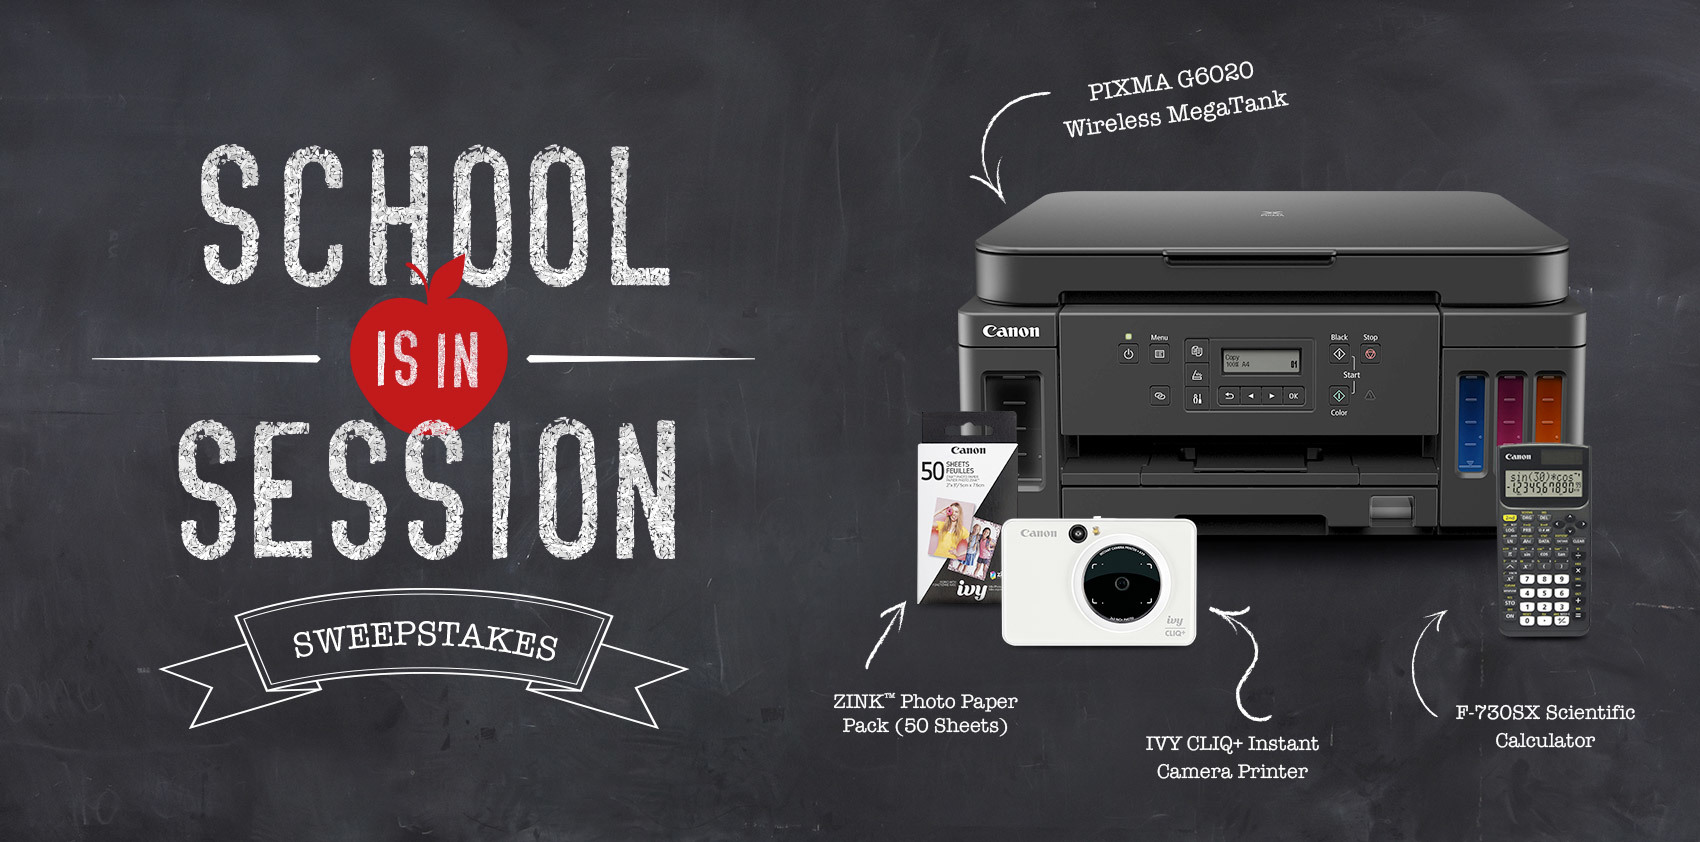 The Canon School in Sessions Sweepstakes